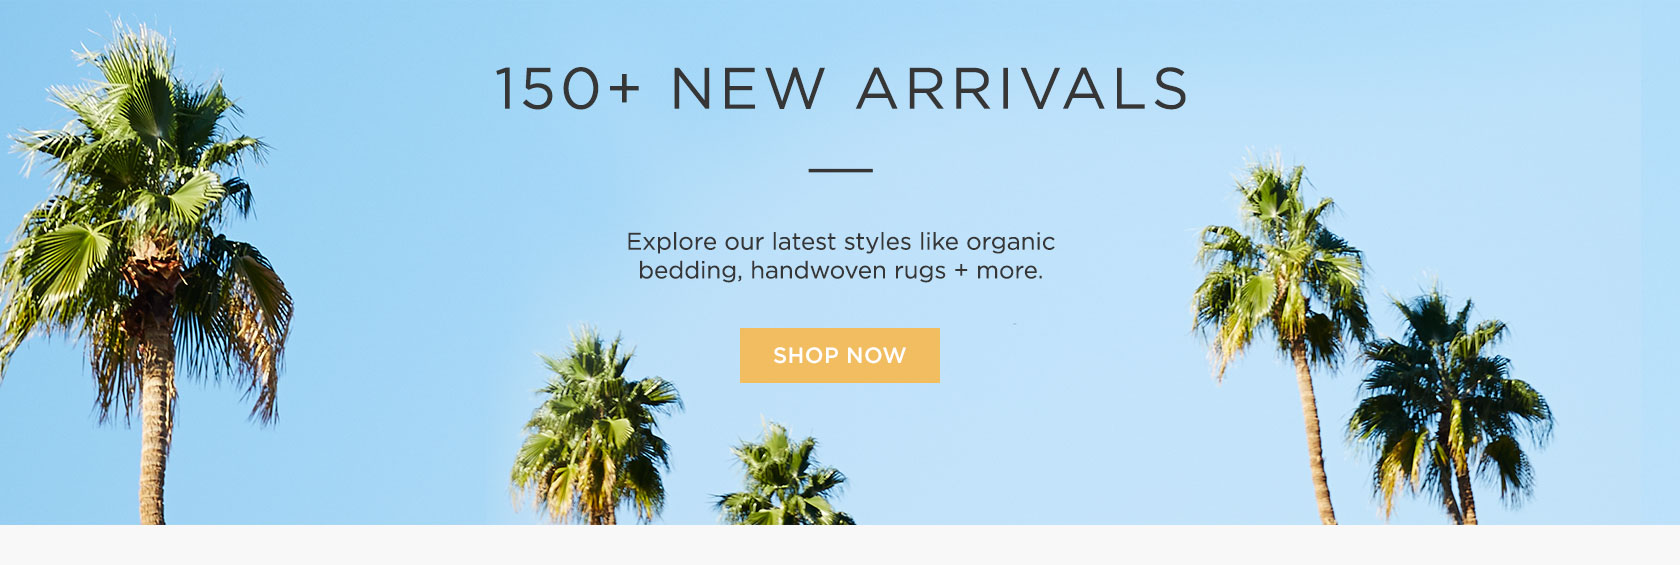 150+ New Arrivals - Explore Latest Handcrafted Styles + More